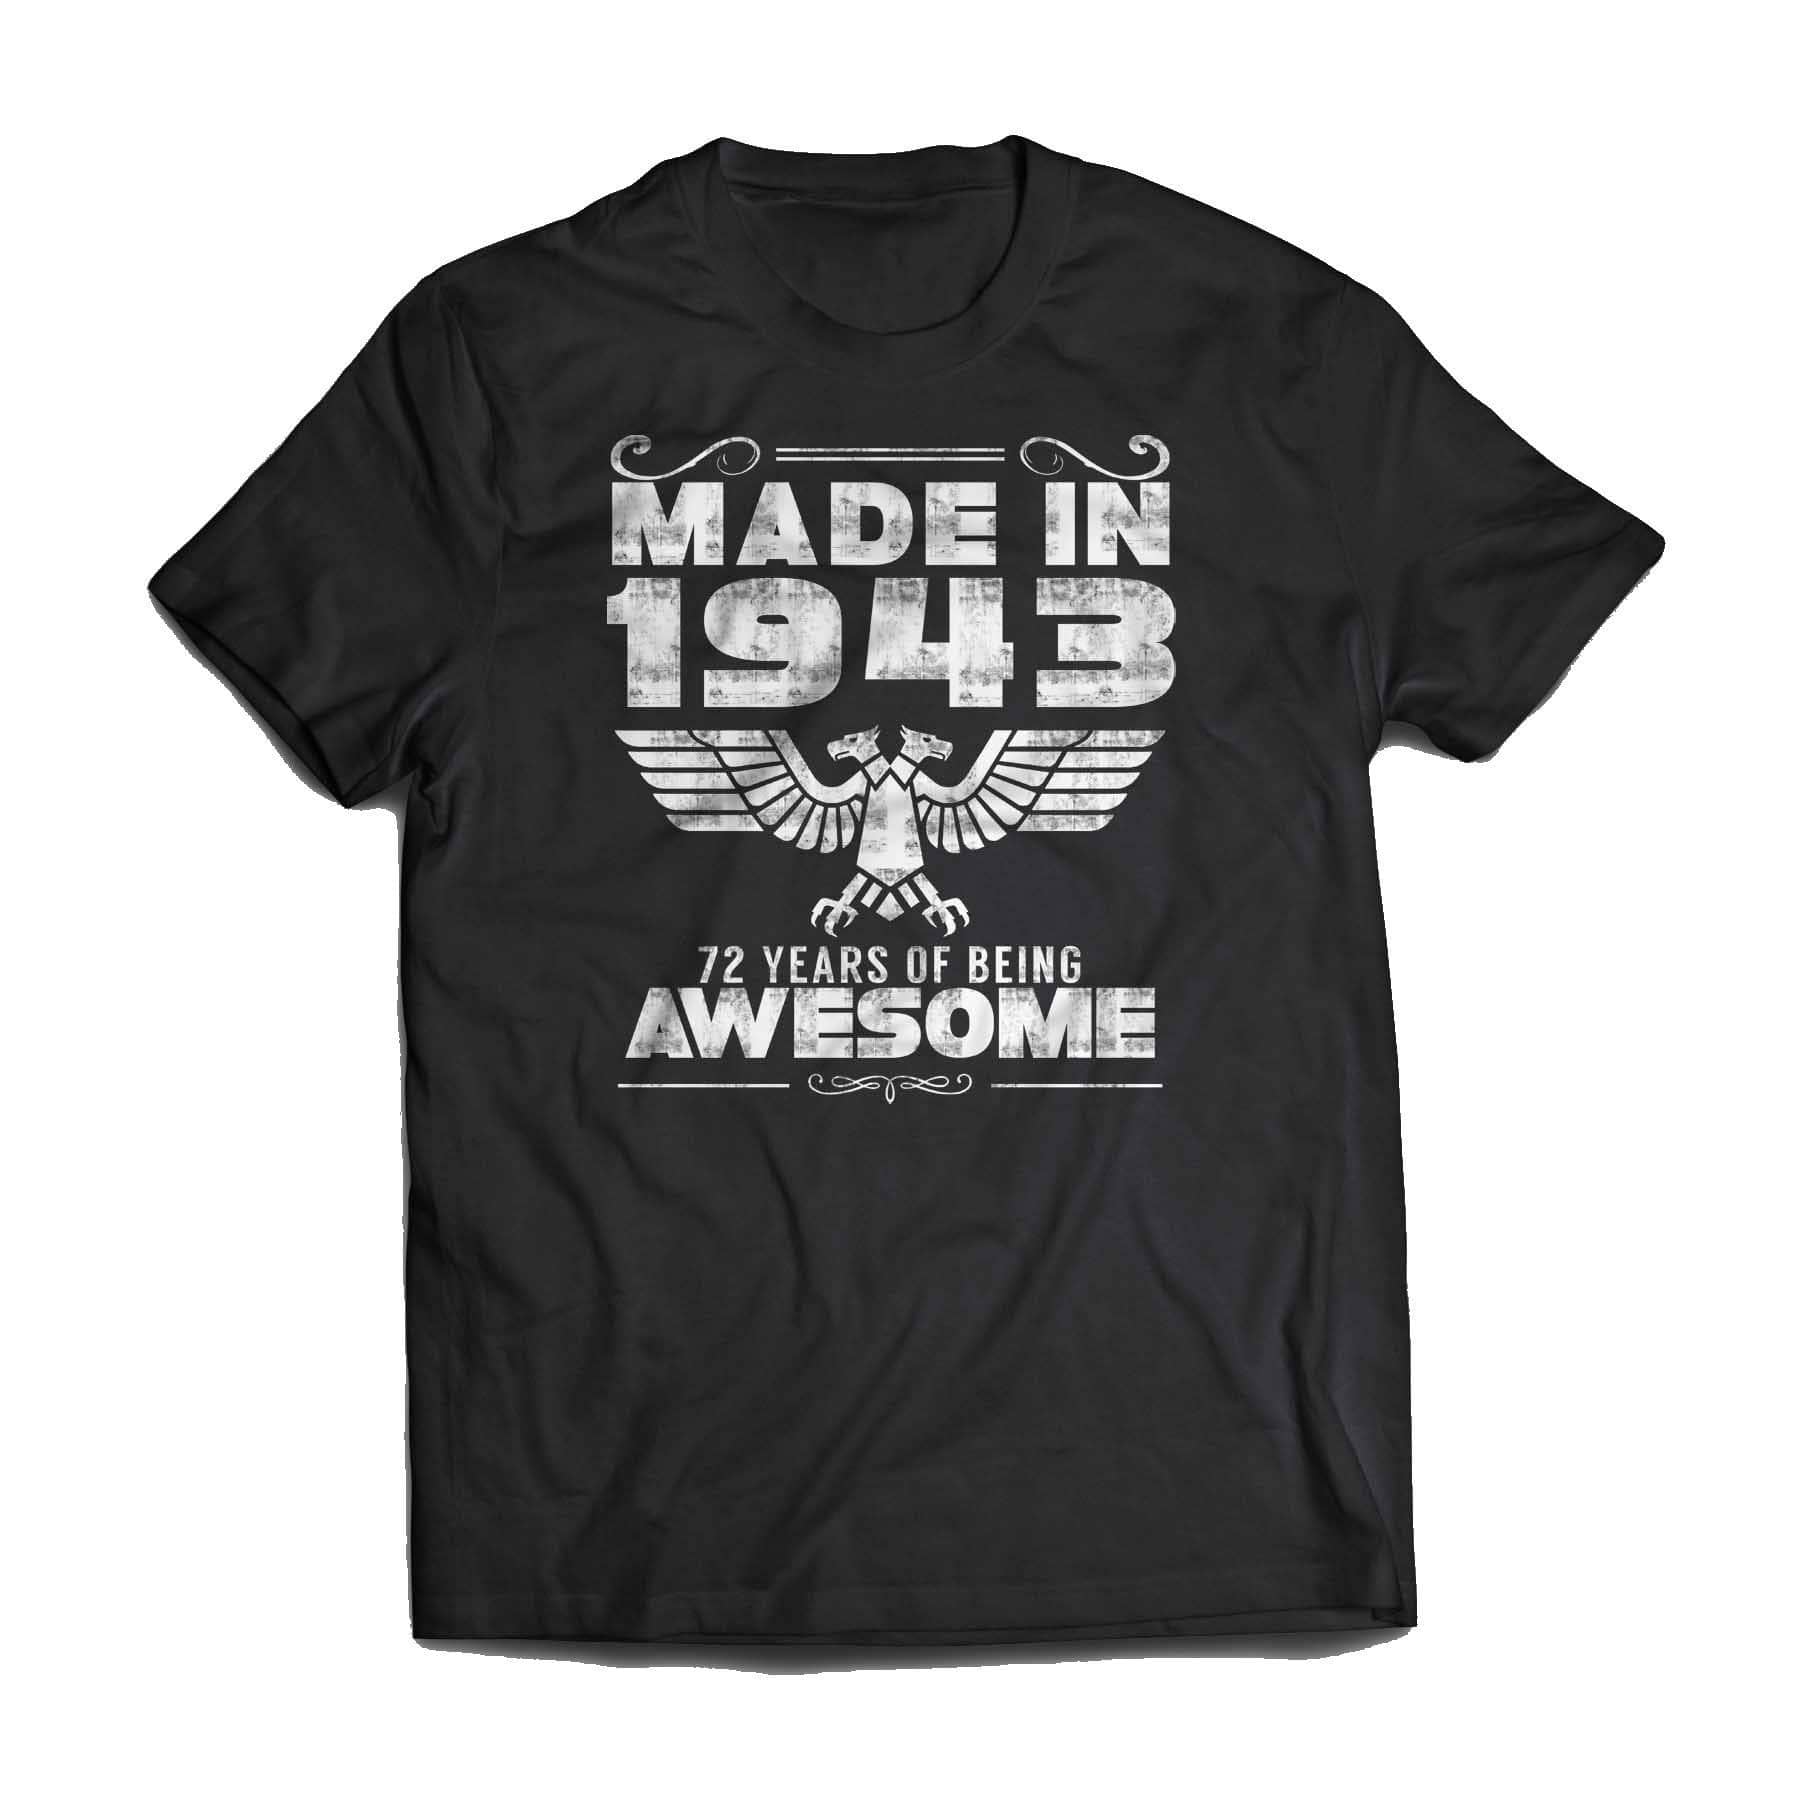 AWESOME SINCE 1943